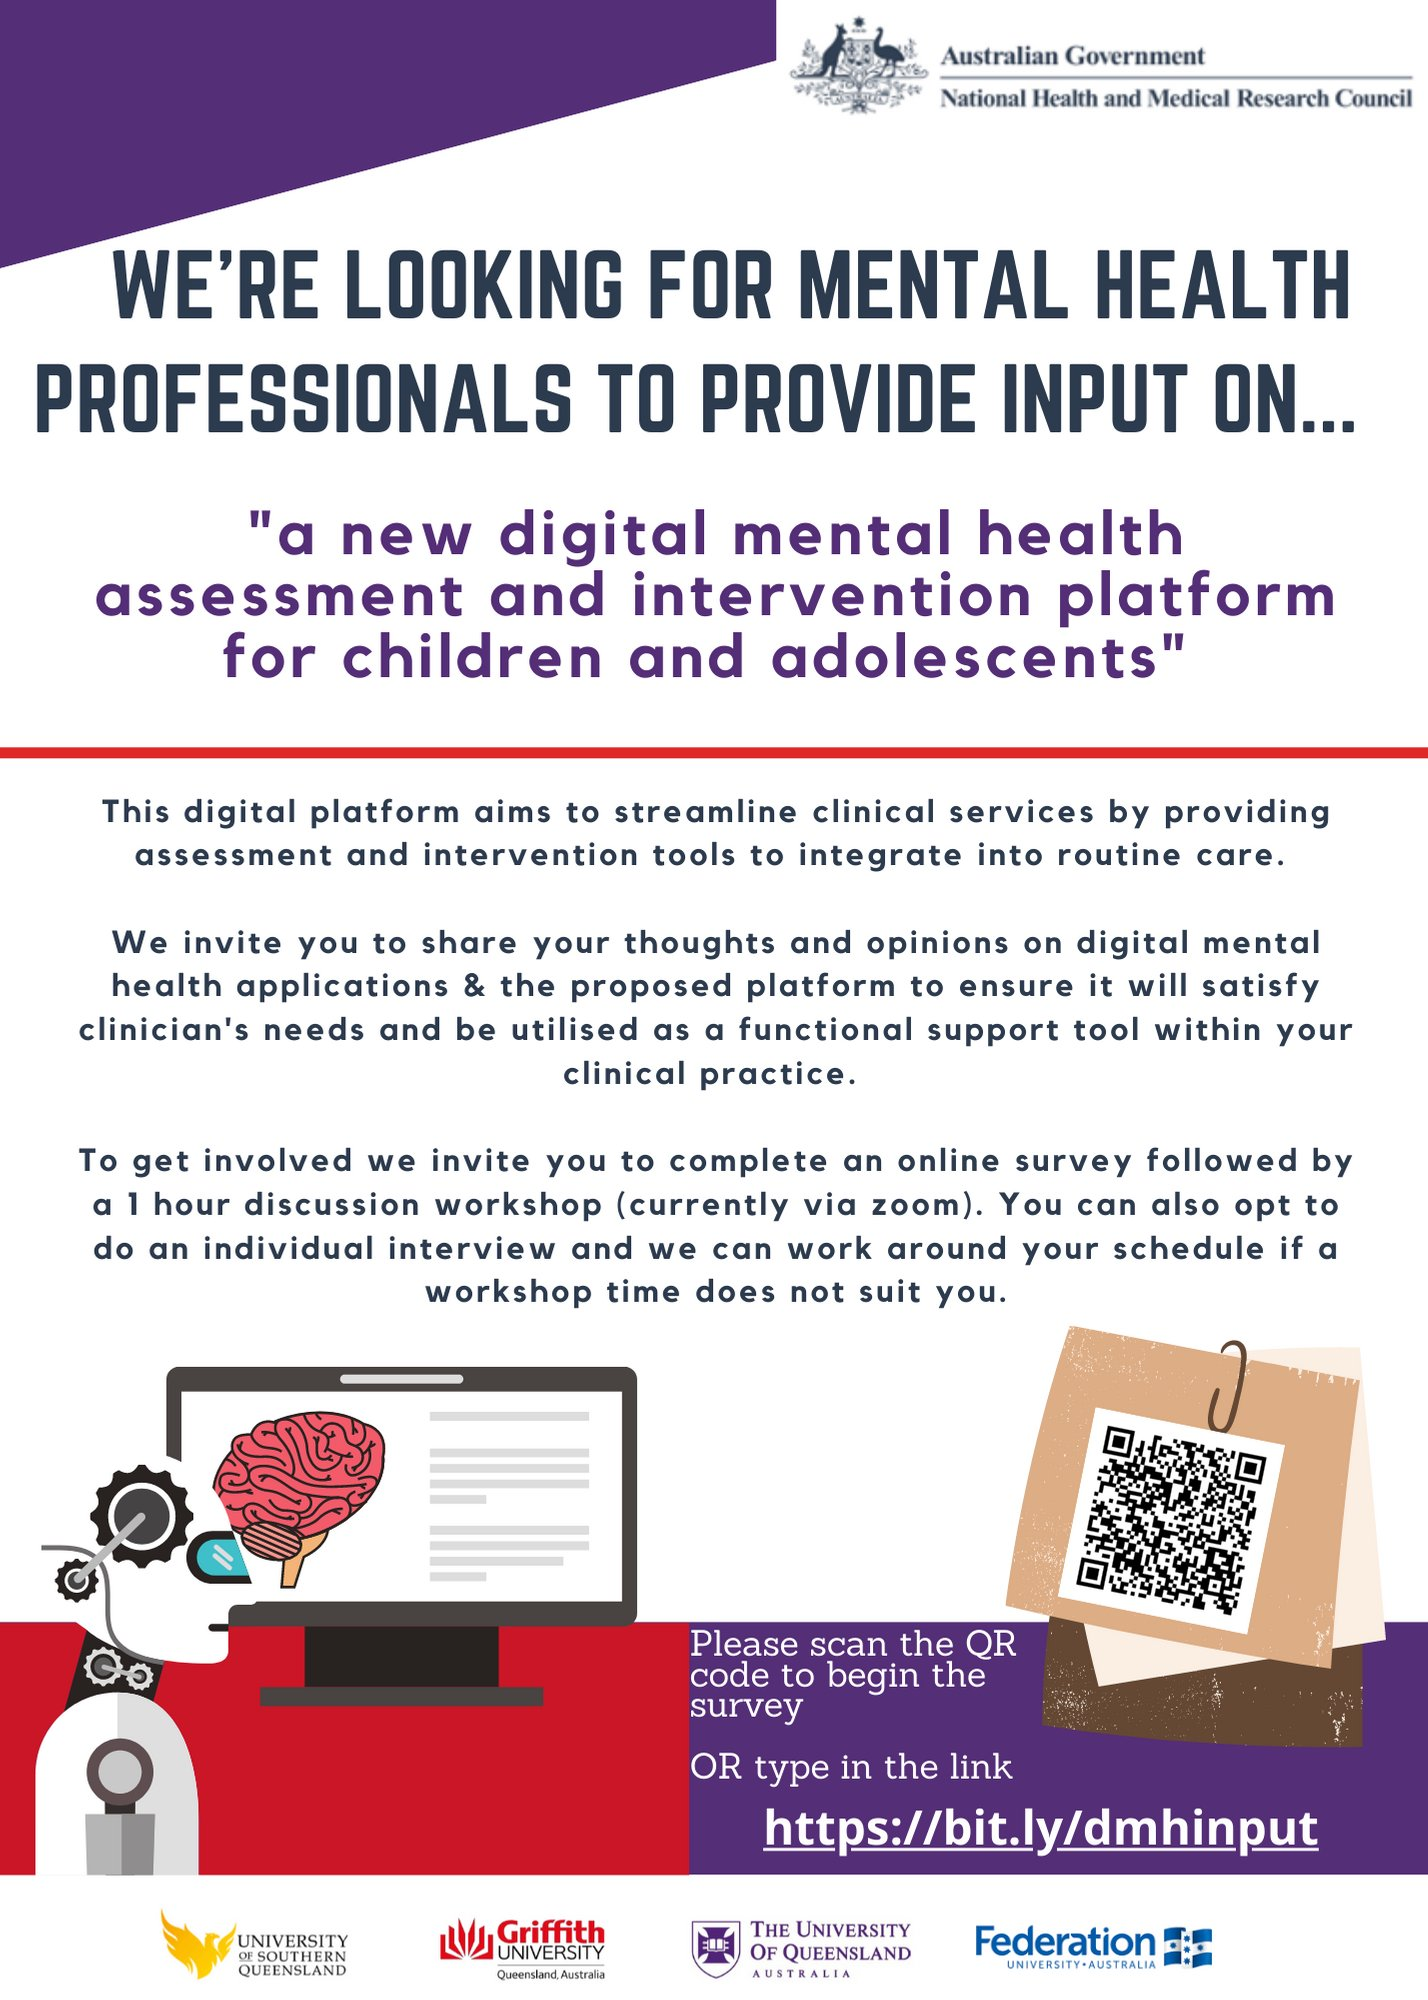 Stuart Biddle On Twitter We Re Looking For Mental Health Professionals To Provide Input On A New Digital Mental Health Assessment And Intervention Platform For Children And Adolescents Https T Co X26jrswscd Https T Co D3ssn7qk2e